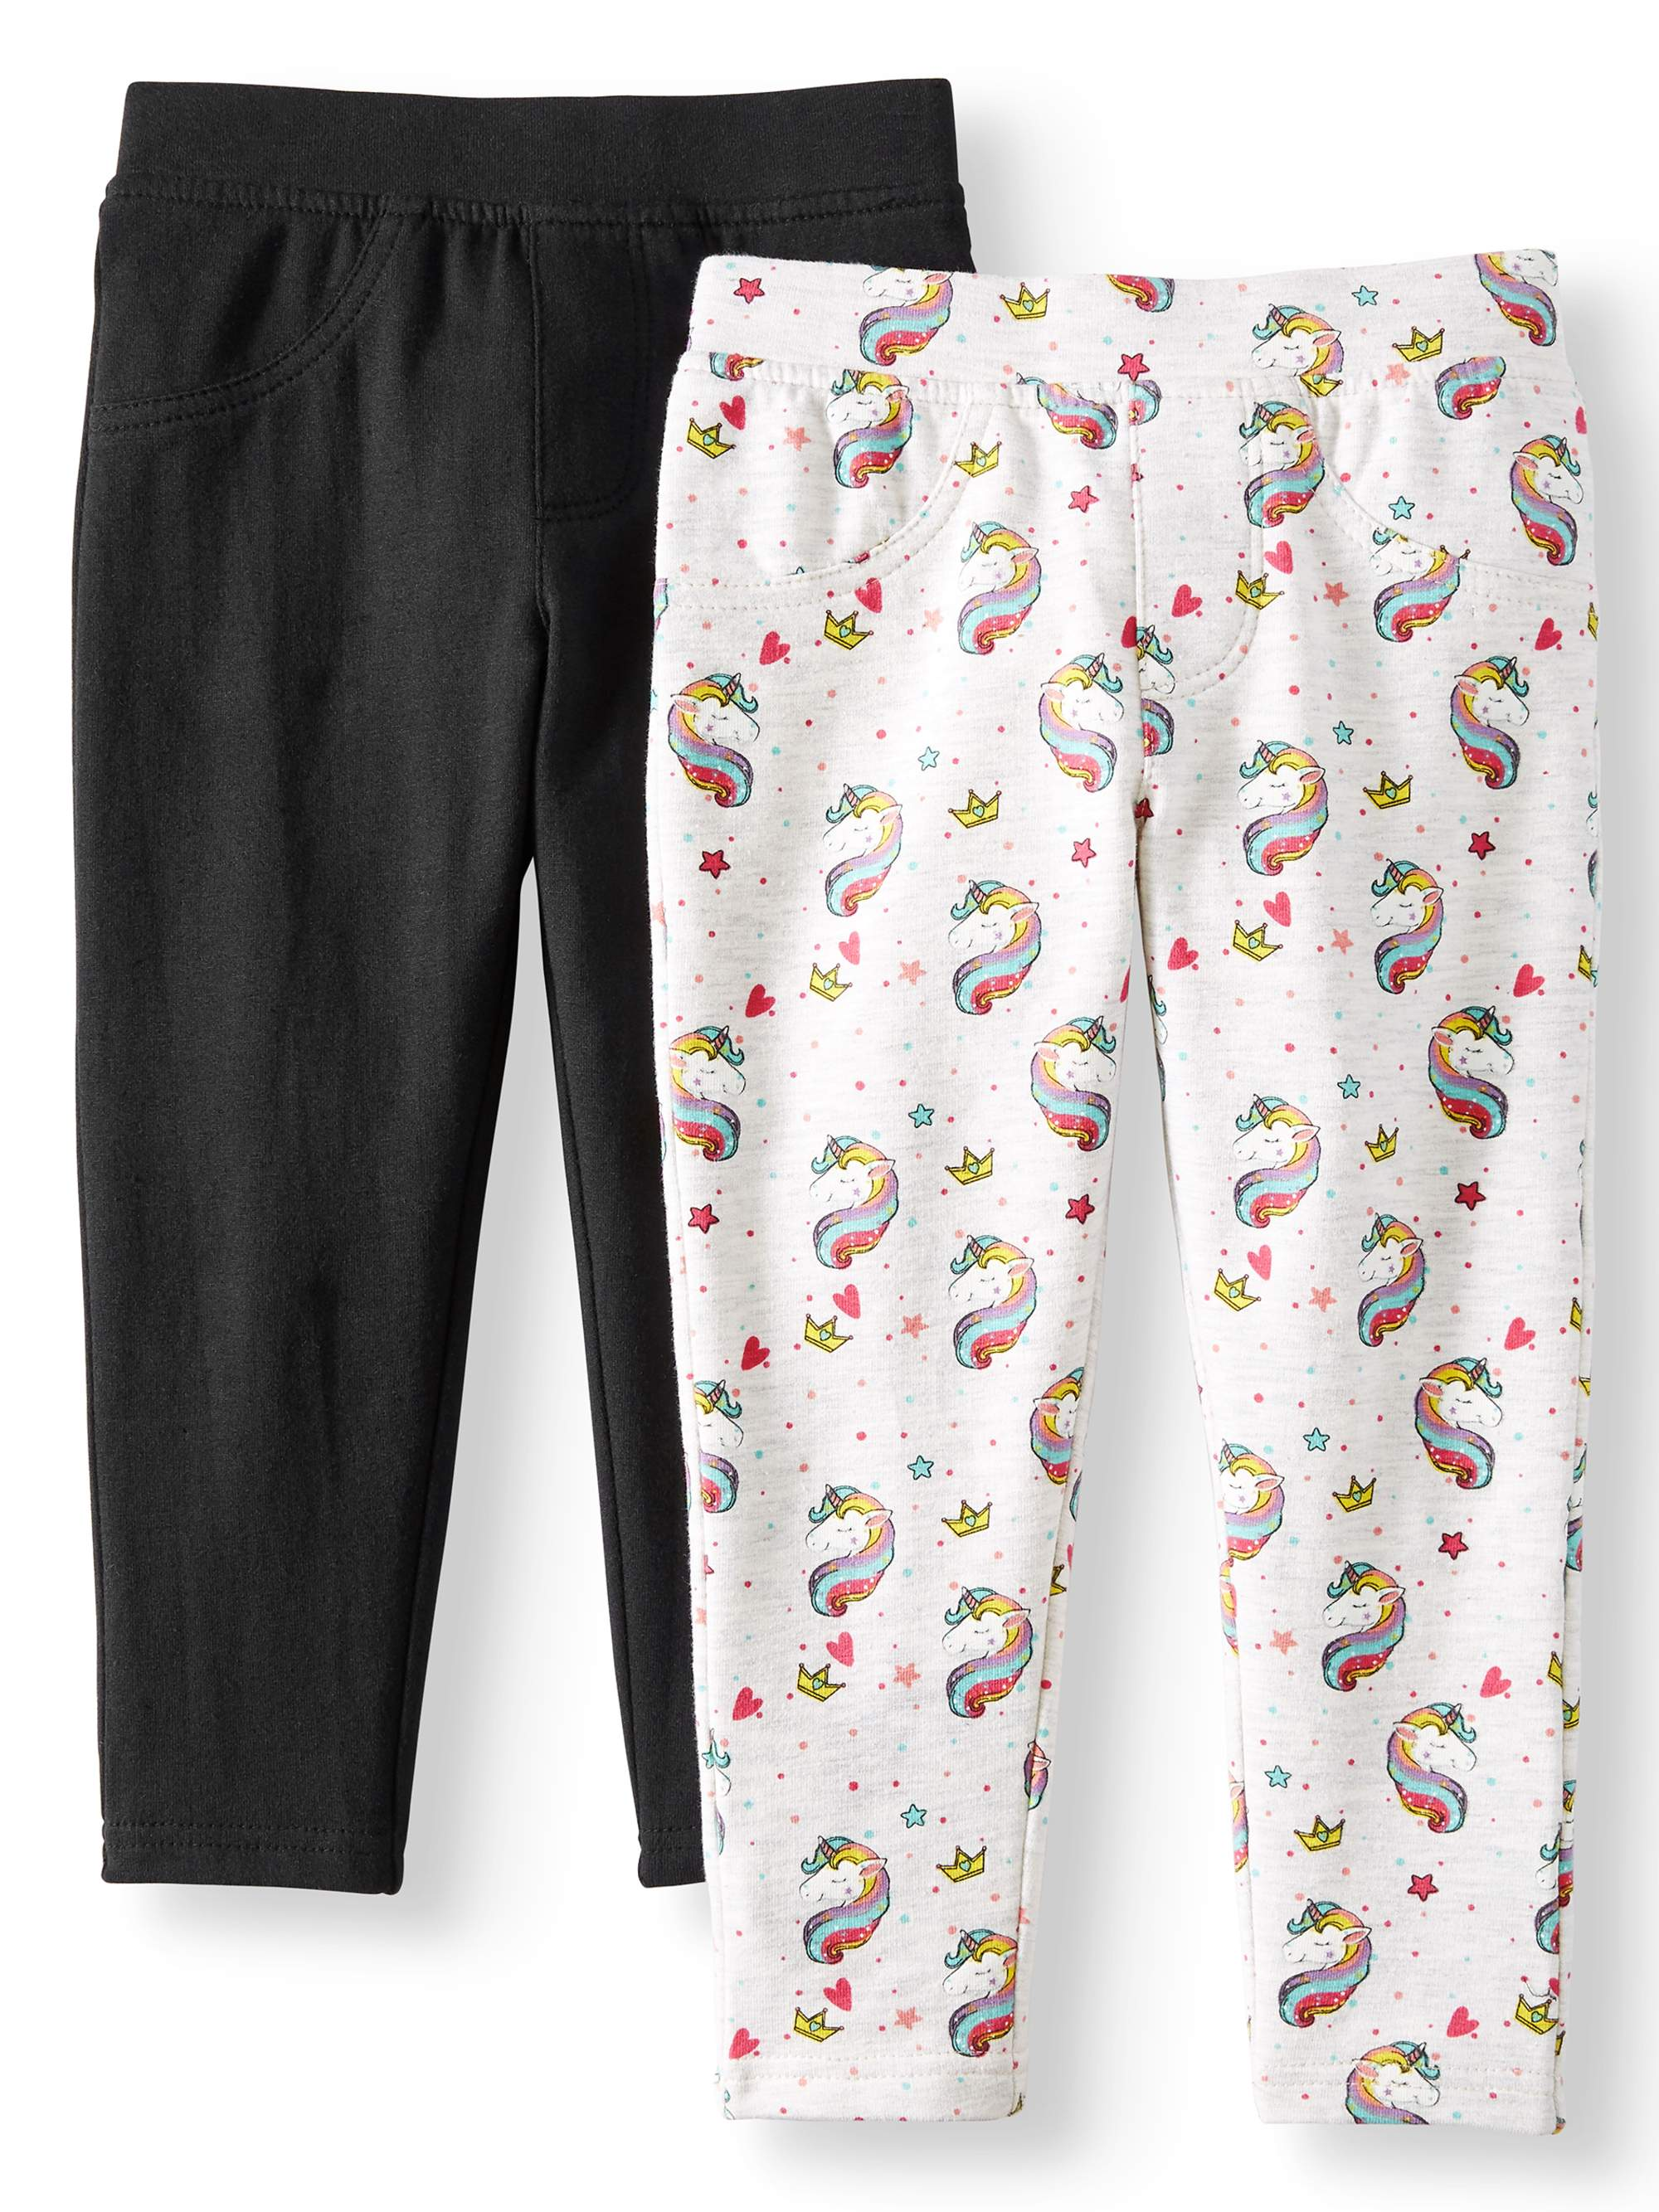 Printed and Solid Knit Jeggings, 2-Pack (Little Girls & Big Girls)